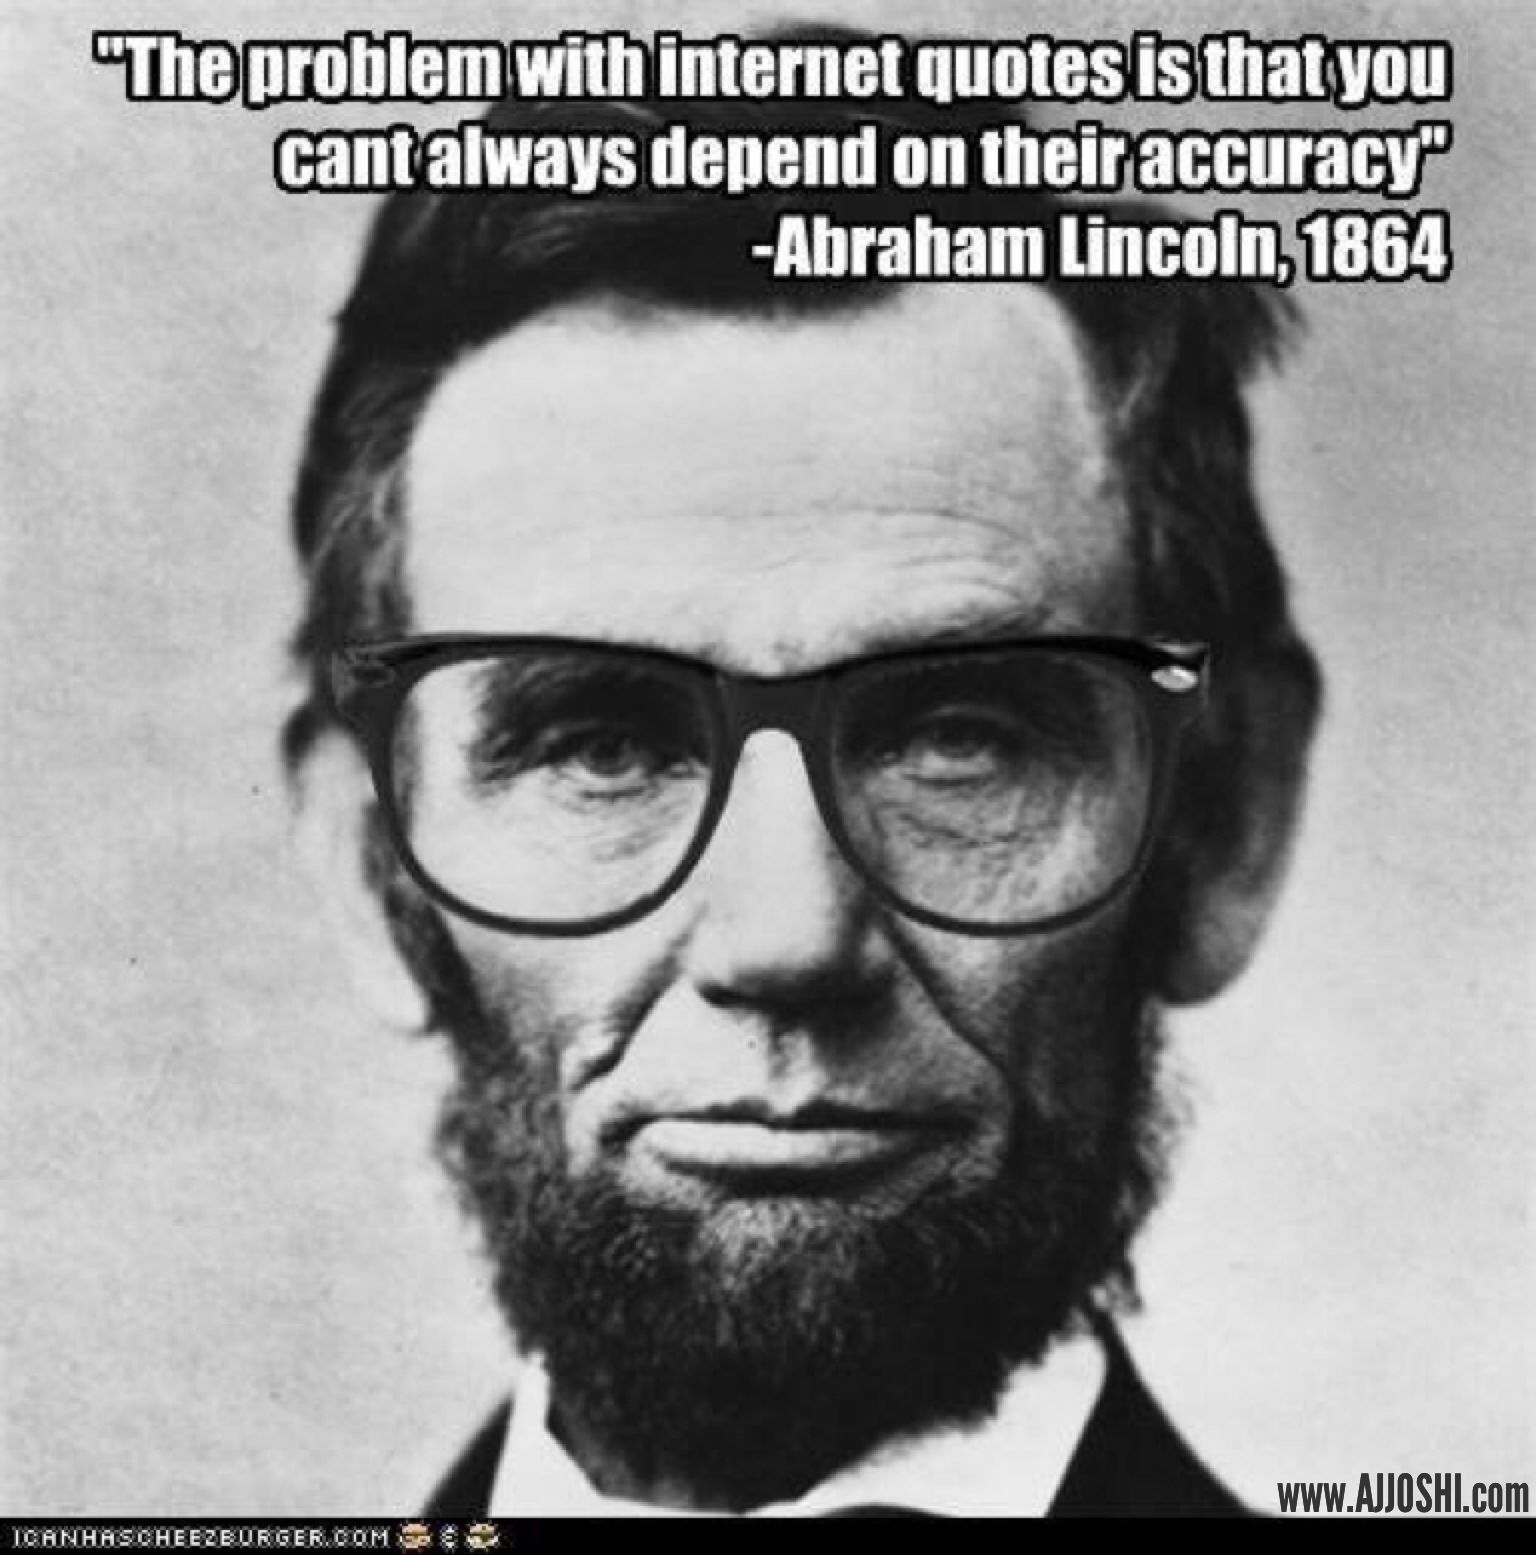 Internet Quotes Abraham Lincoln On The Internet  Food For Thought  Pinterest